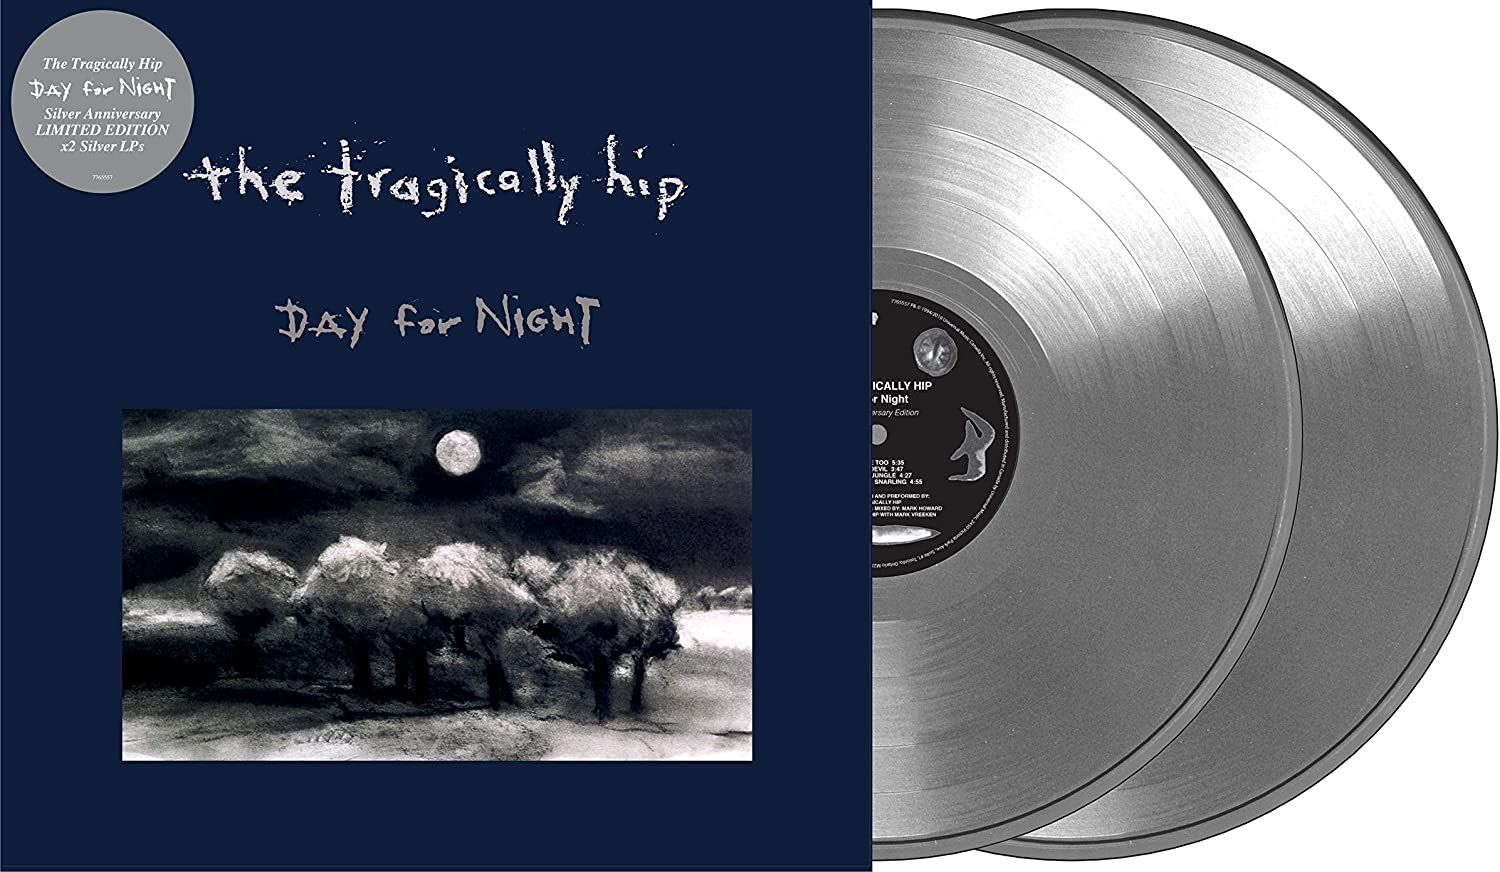 Tragically Hip, The/Day For Night (25th Ann. Silver Vinyl) [LP]